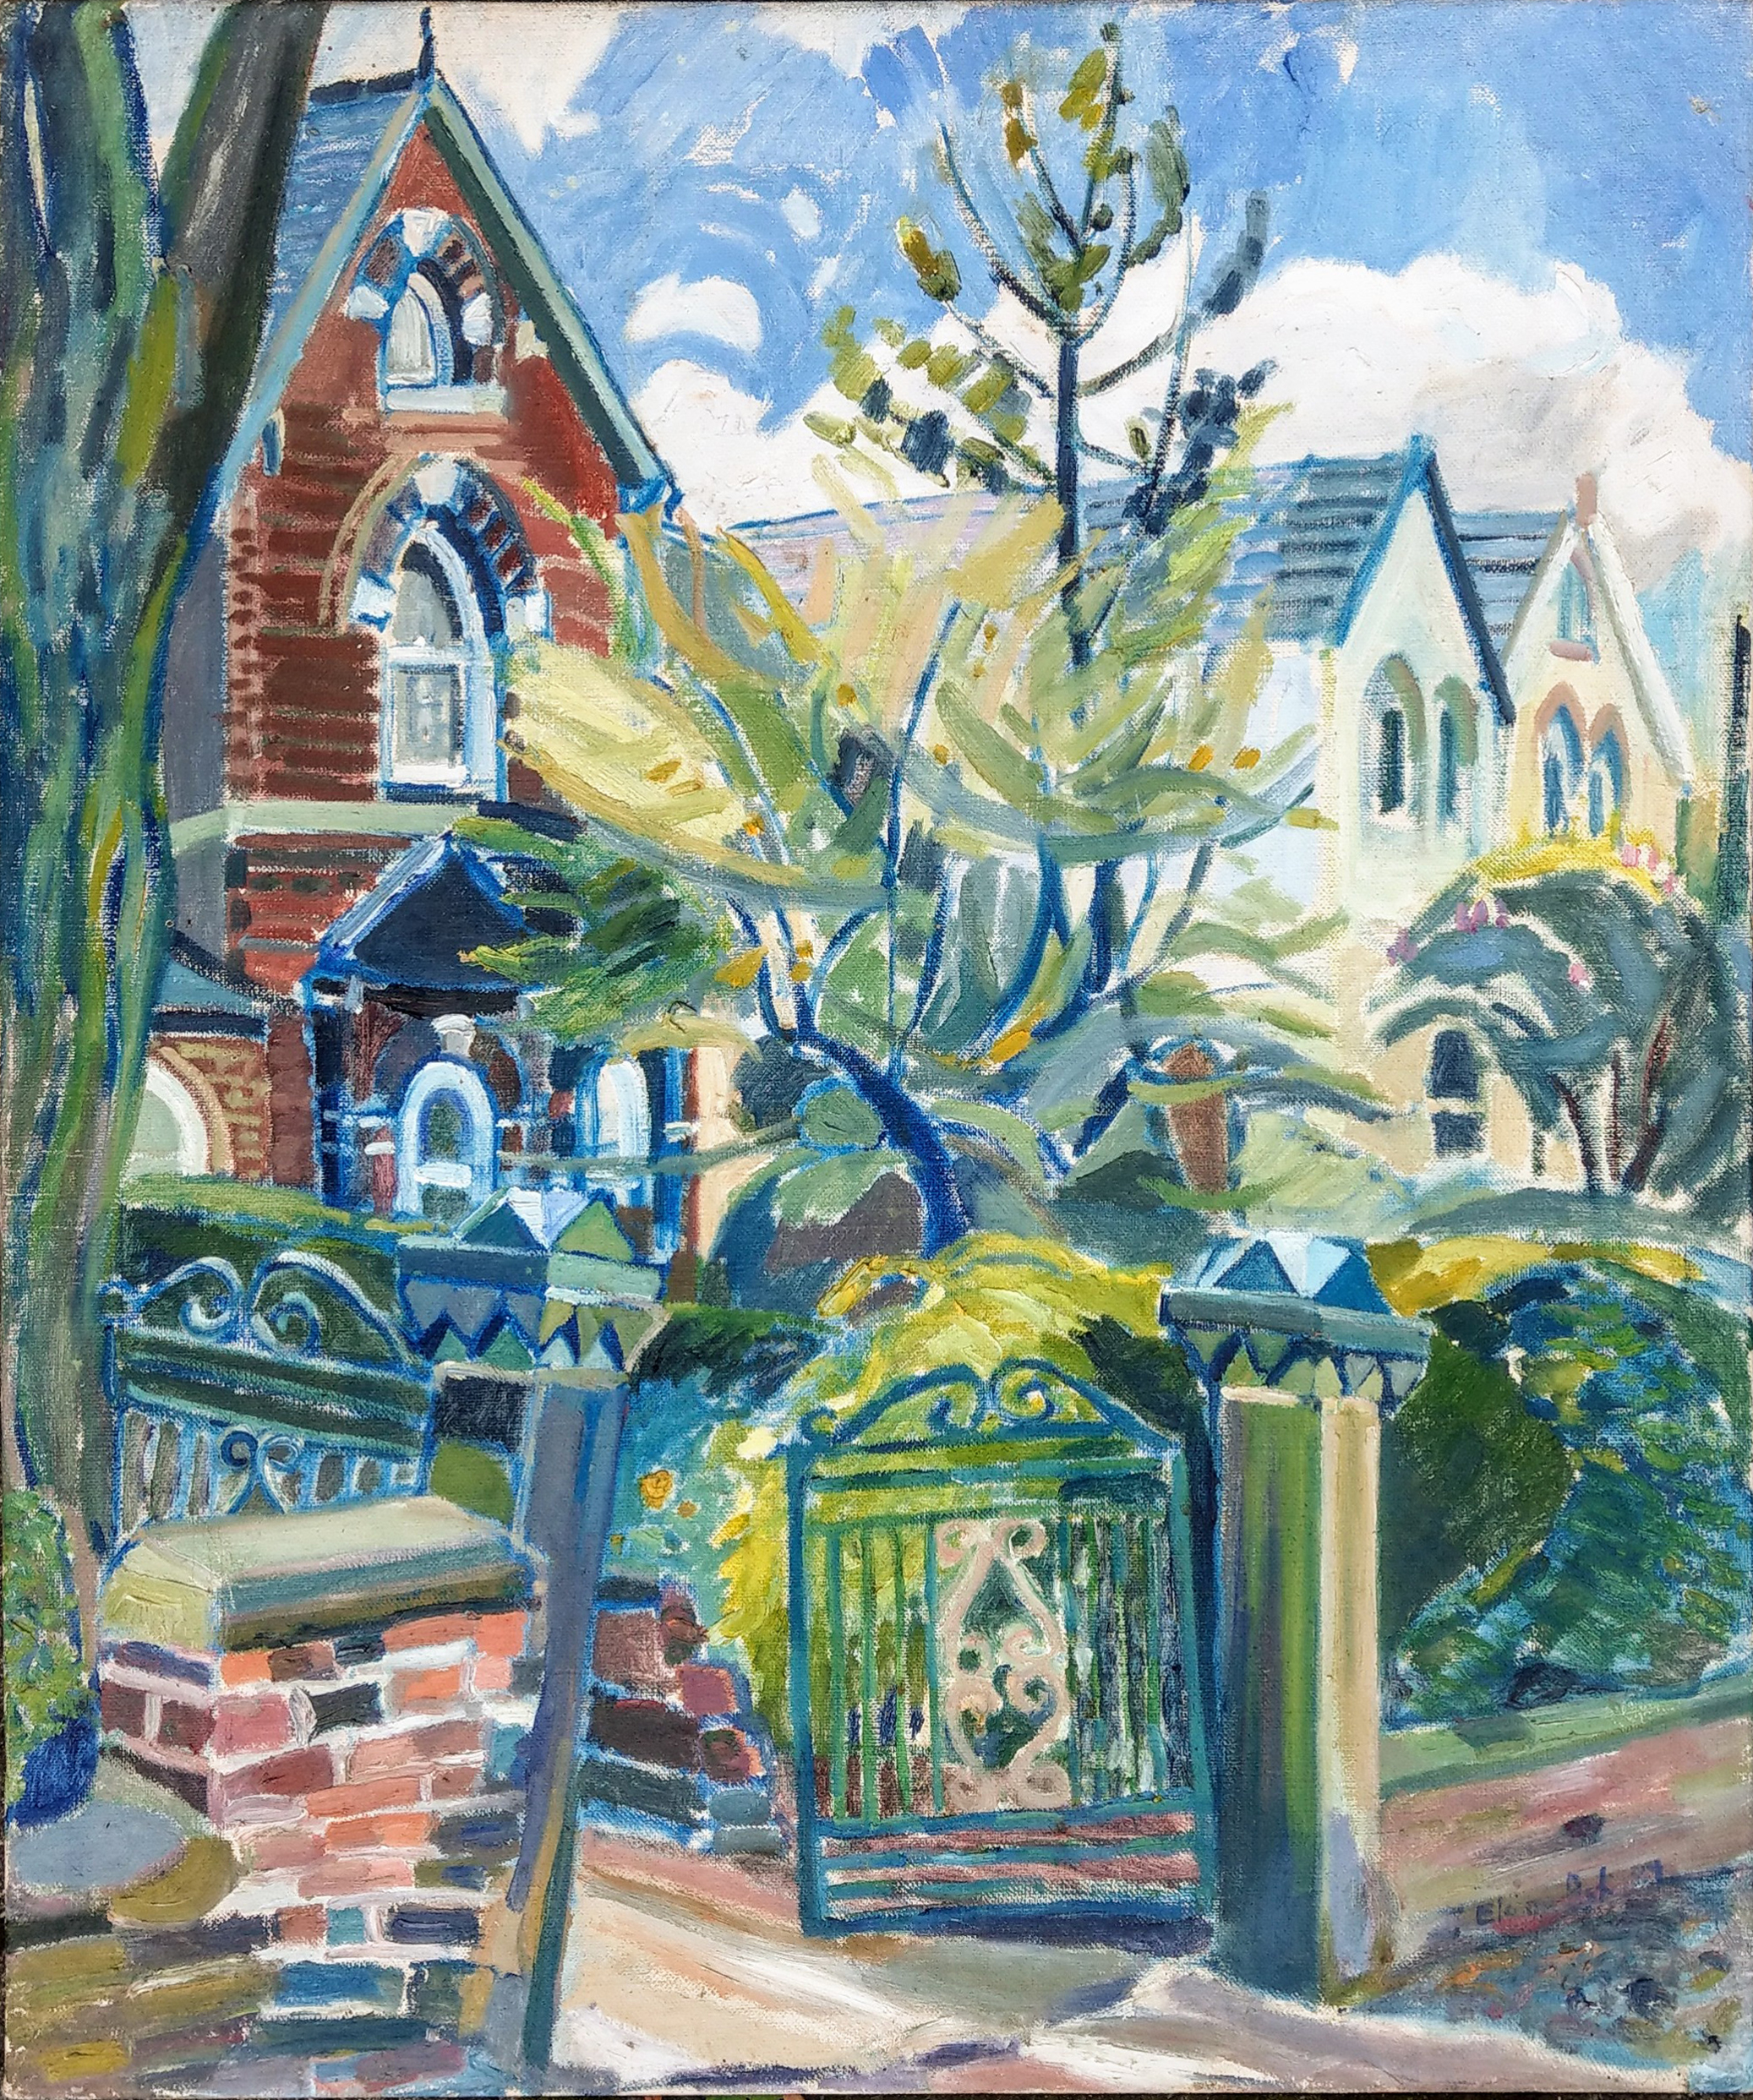 1989 oil painting by Elaine Ask.  House on Park Road, Dewsbury, West Yorkshire